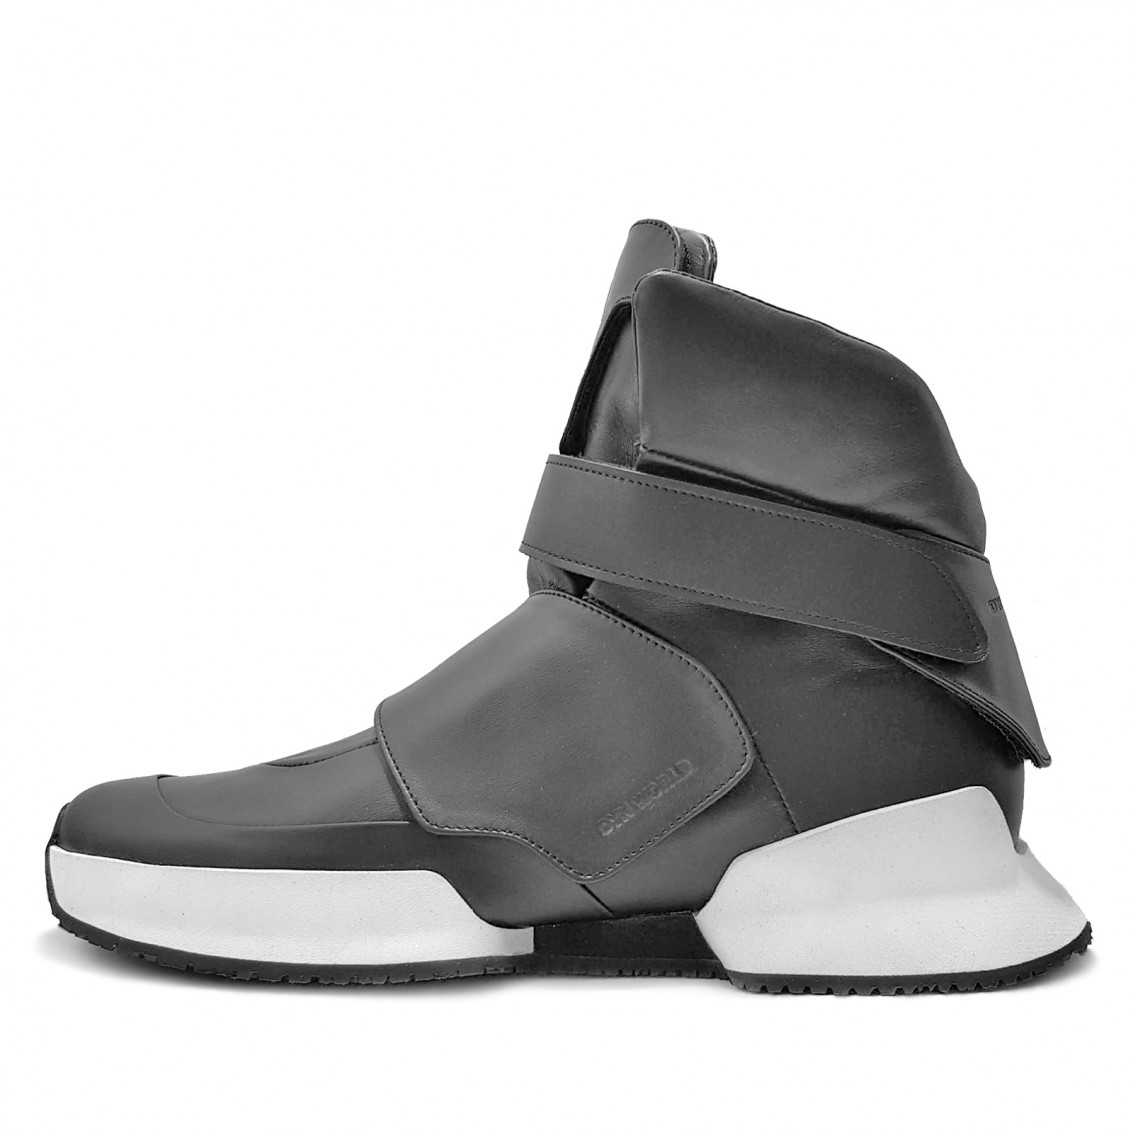 RDS PROTOTYPE. First replacement details high-top sneakers.